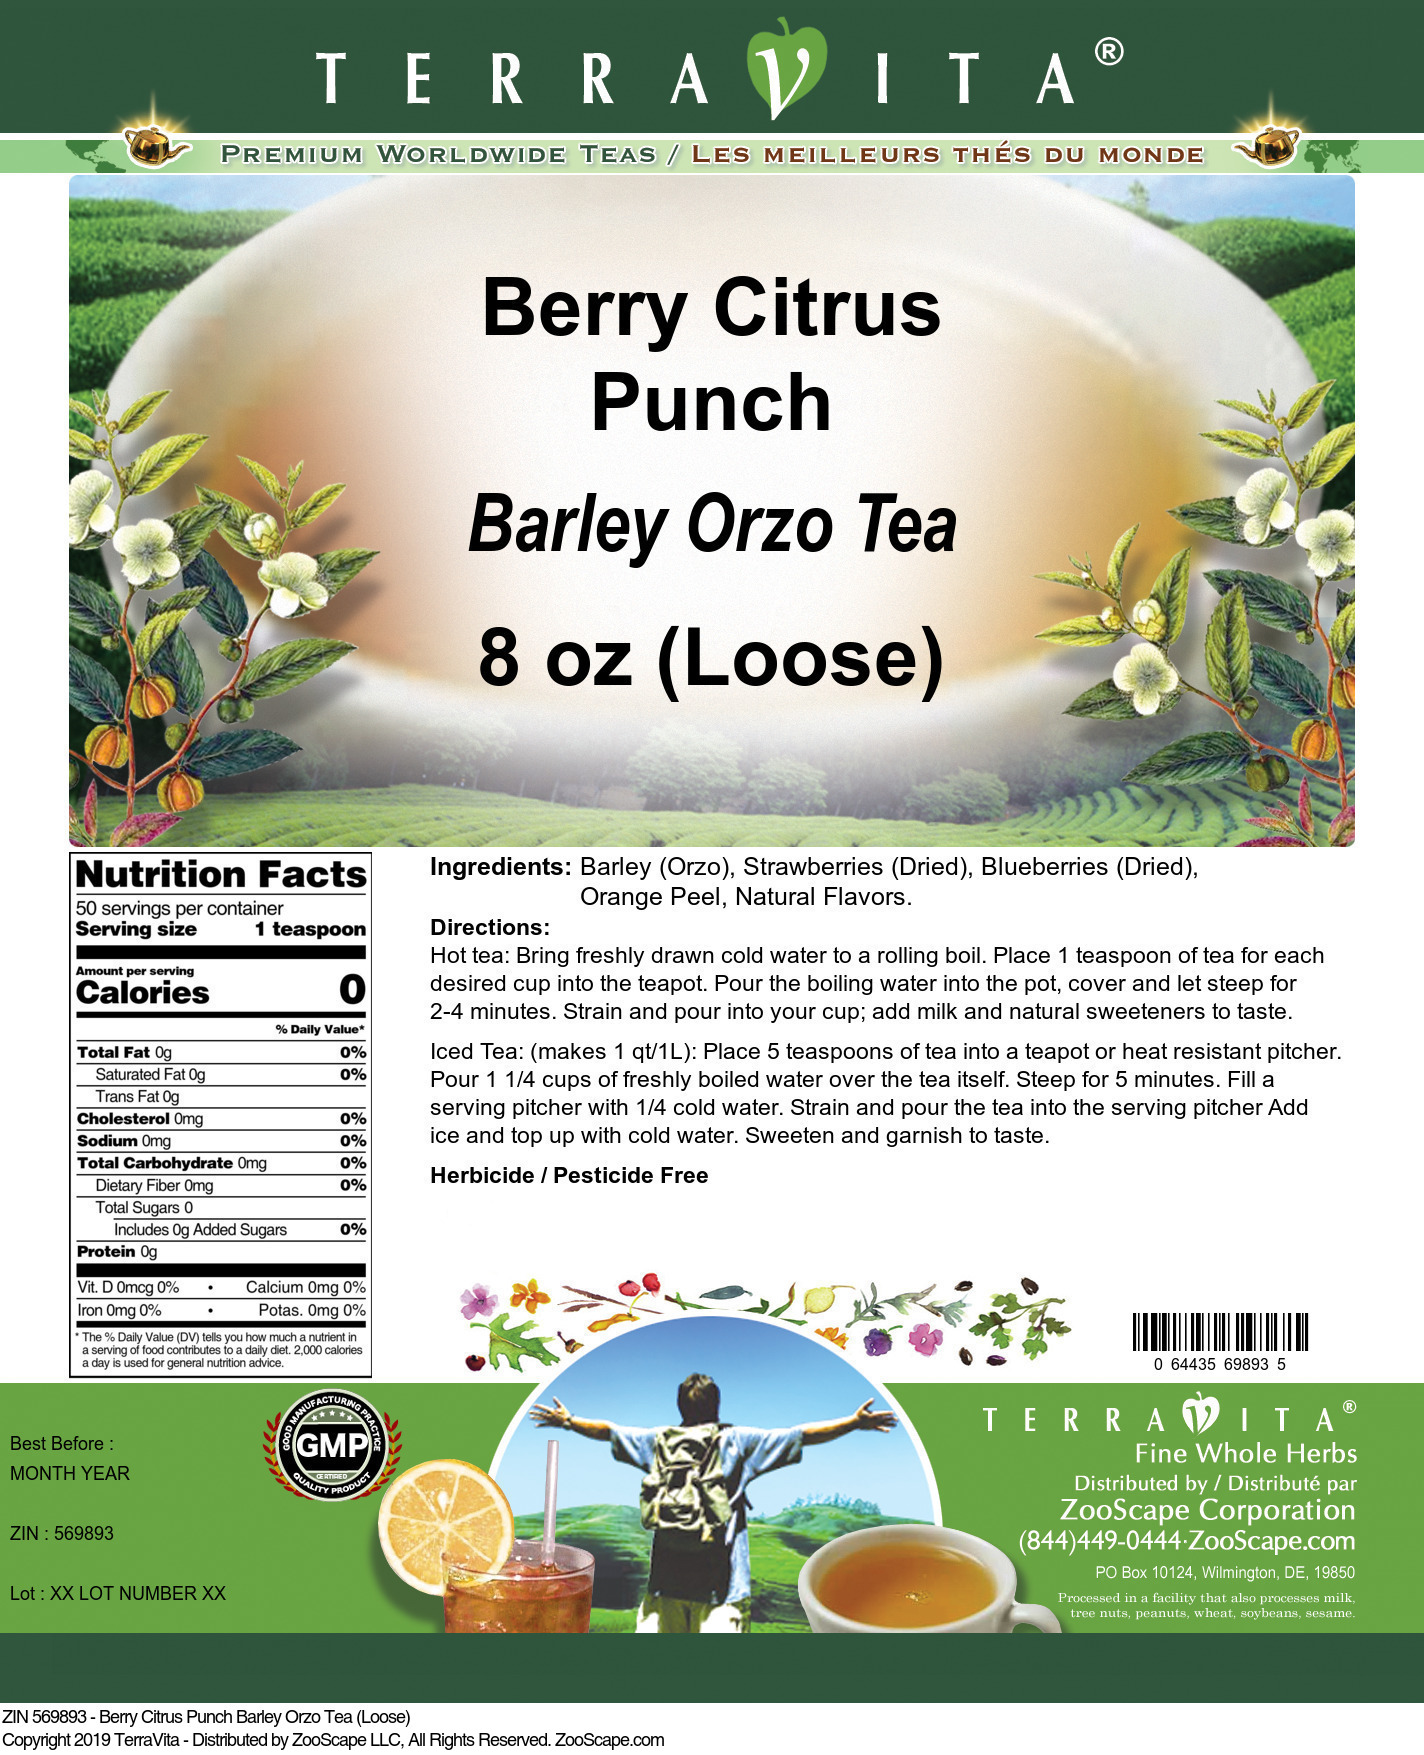 Berry Citrus Punch Barley Orzo